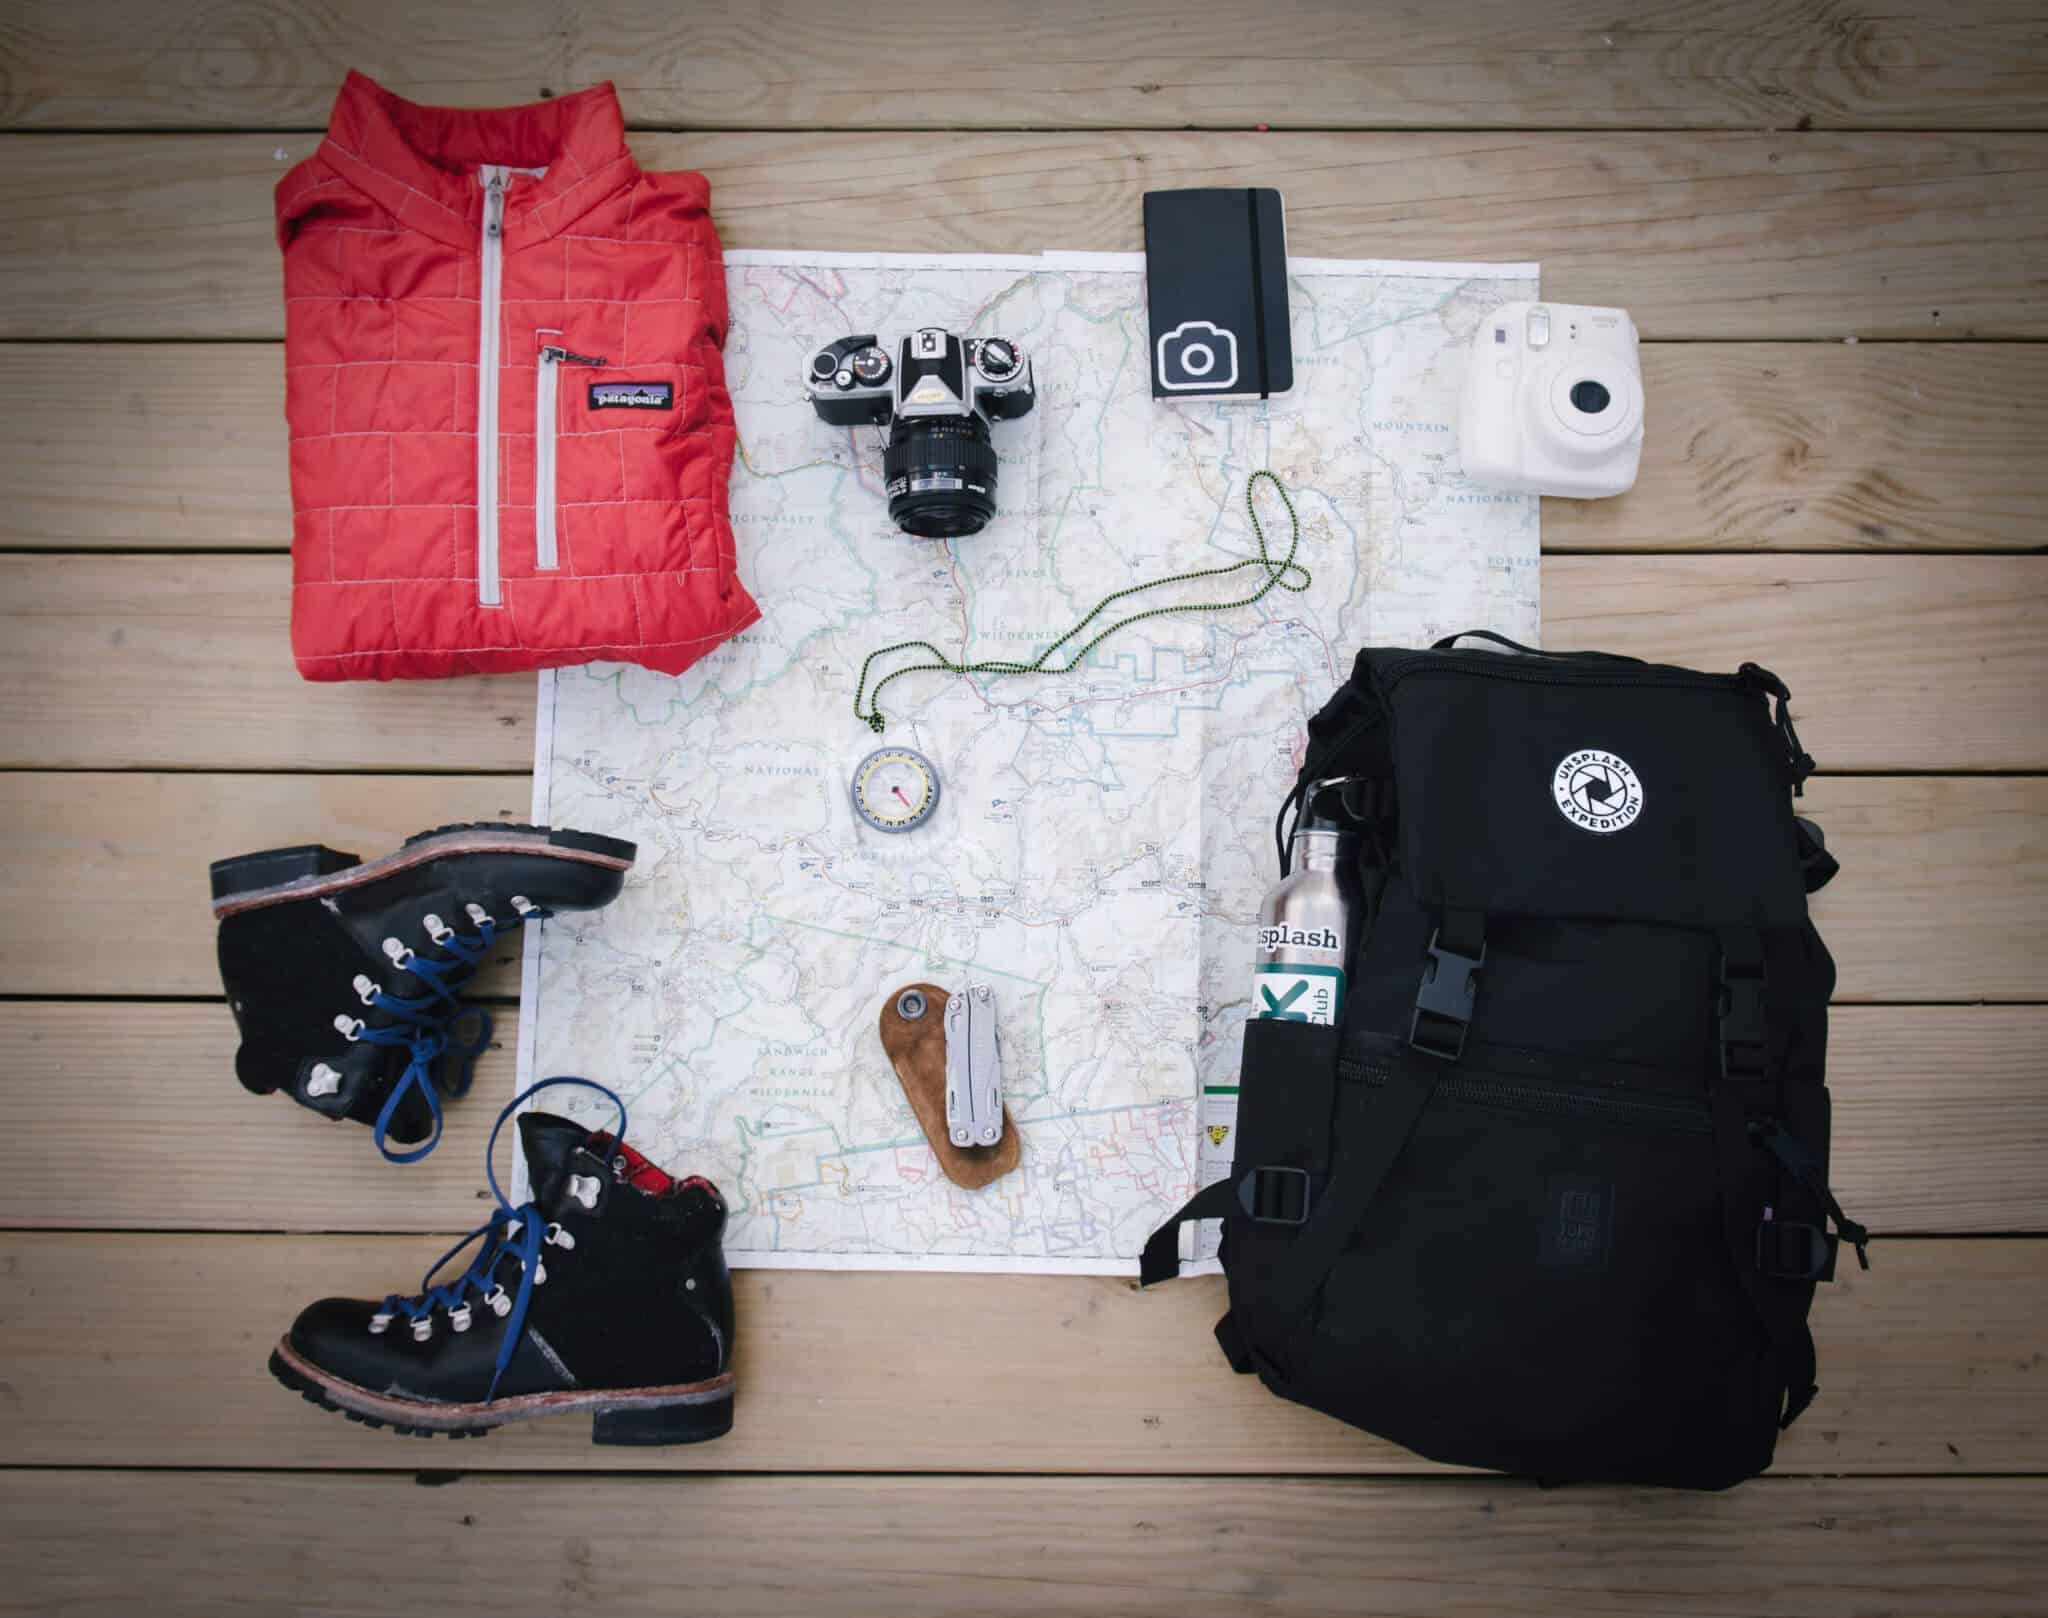 A flatlay with a travel backpack and other travel accessories like a compass and map.